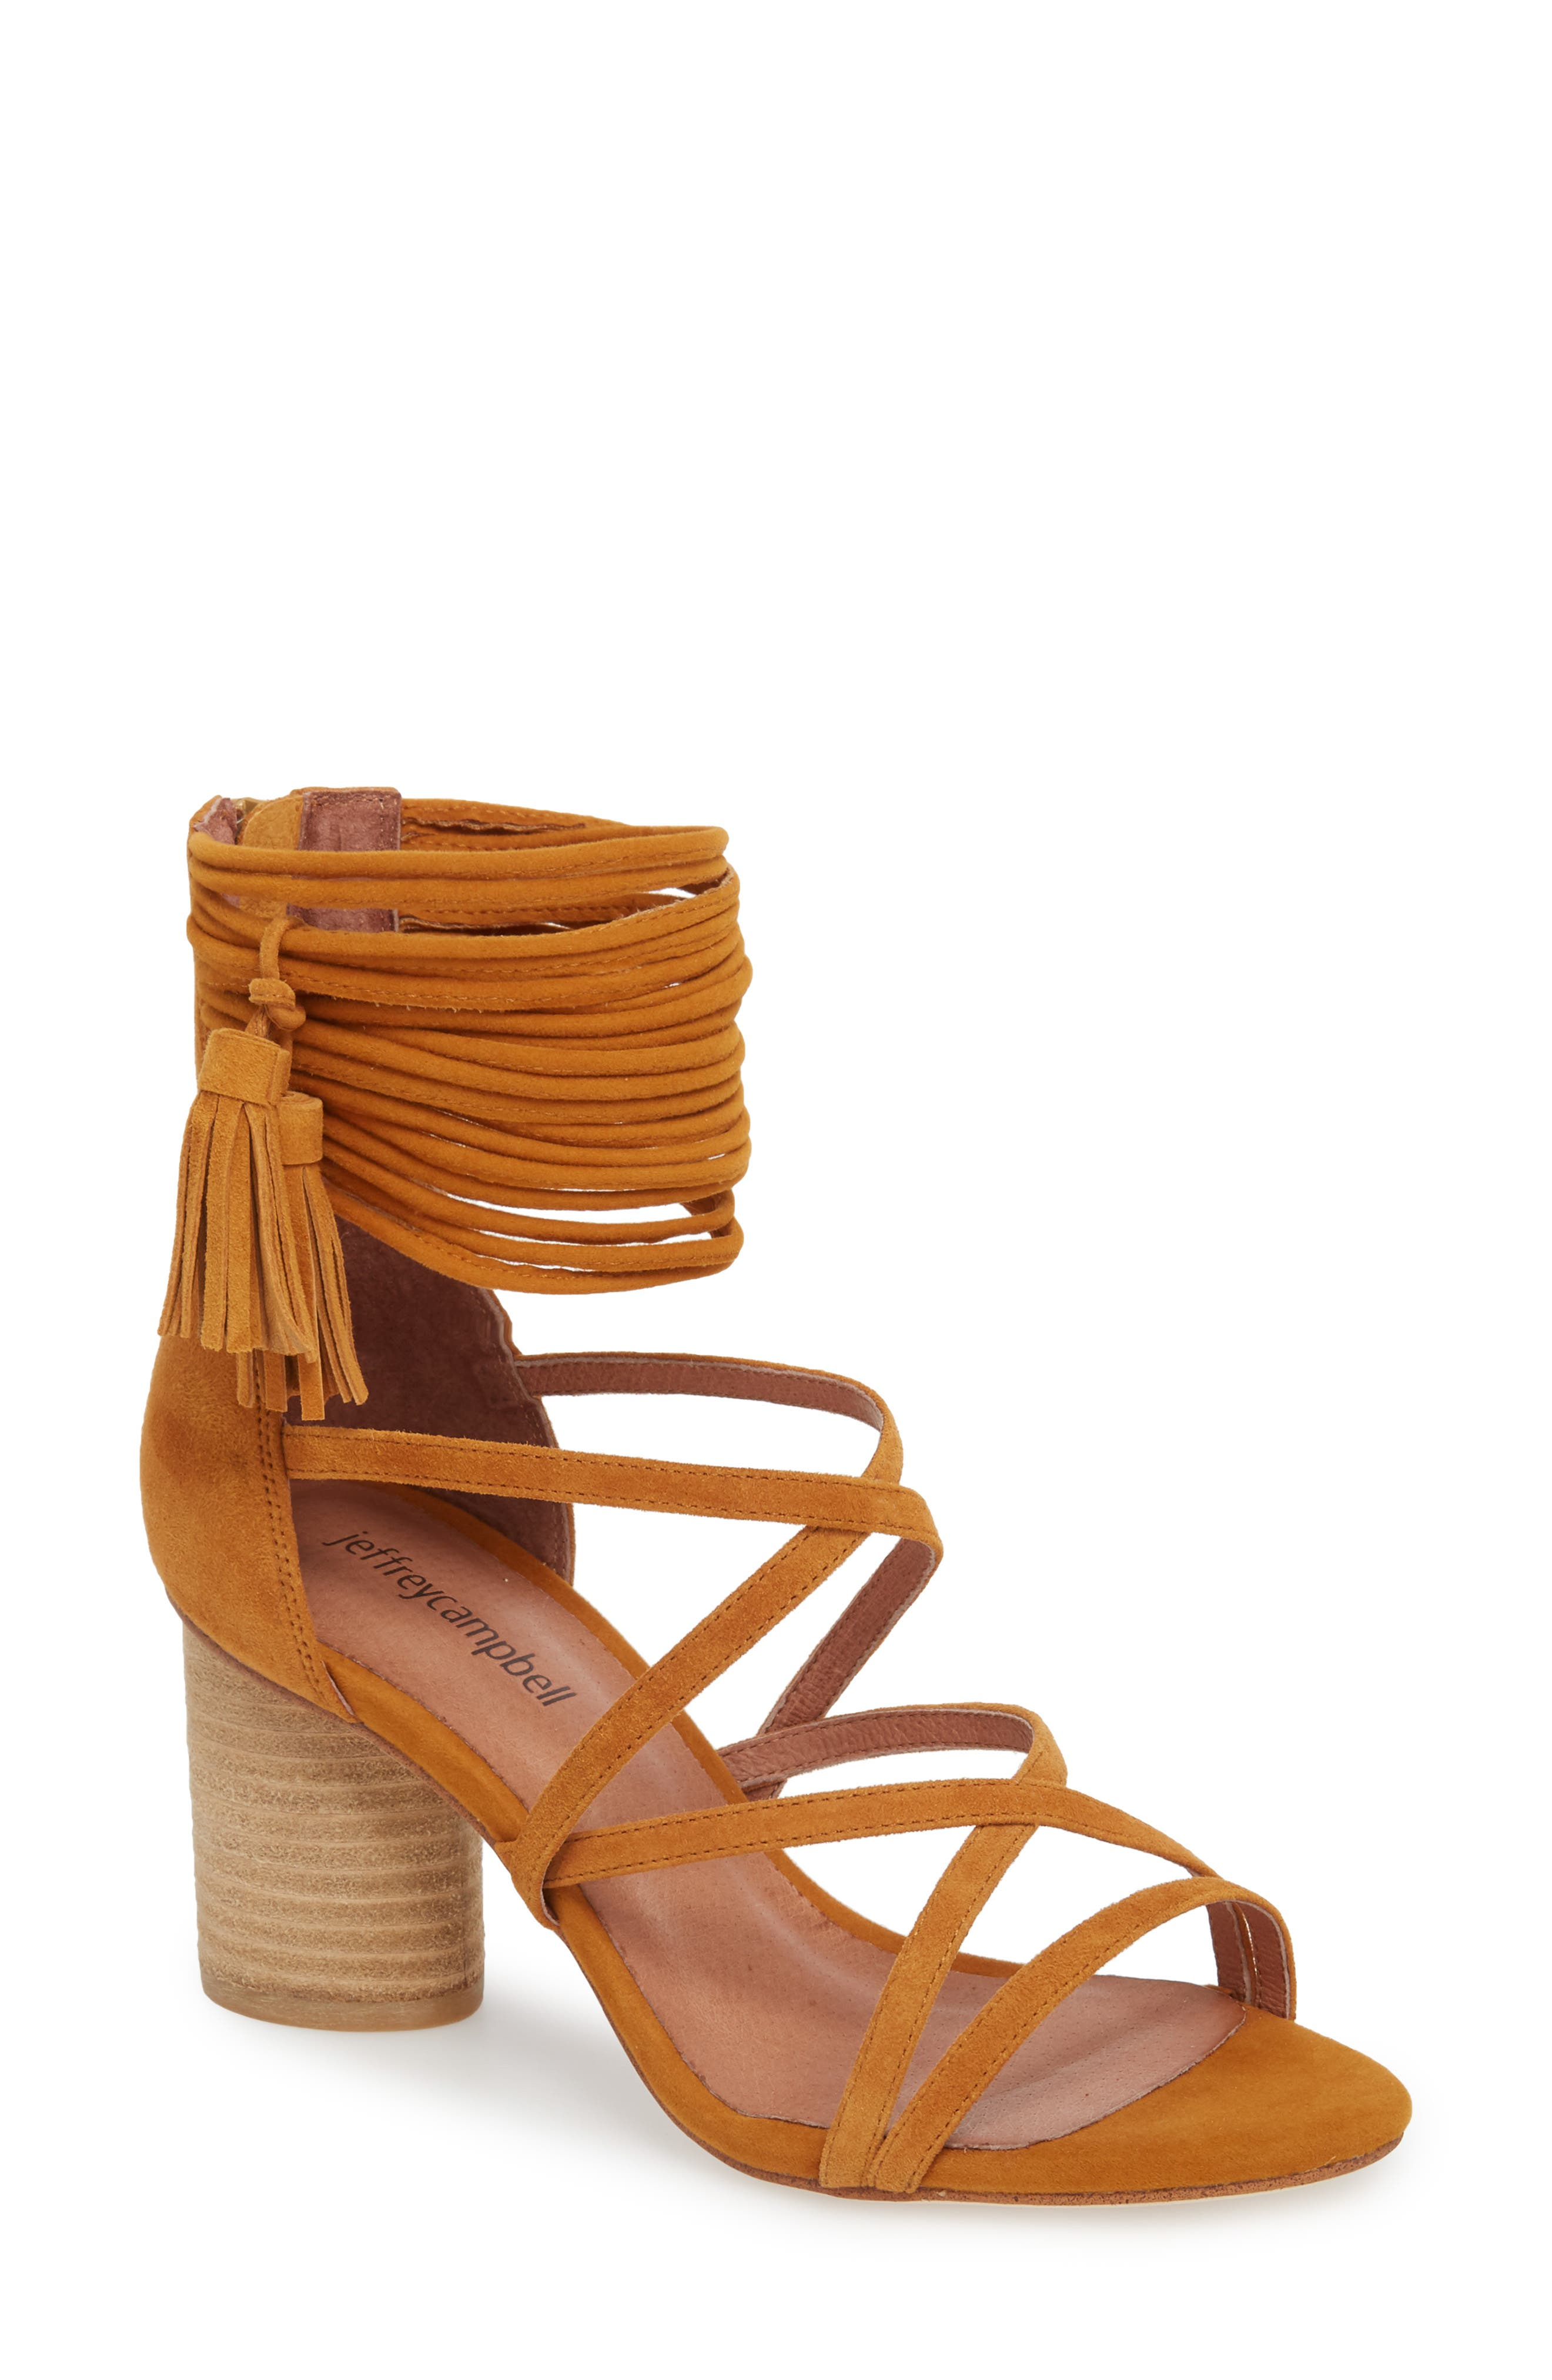 Lillian Heel in Blush. - size 7 (also in 10,6,6.5,7.5,8,8.5,9,9.5) Jeffrey Campbell